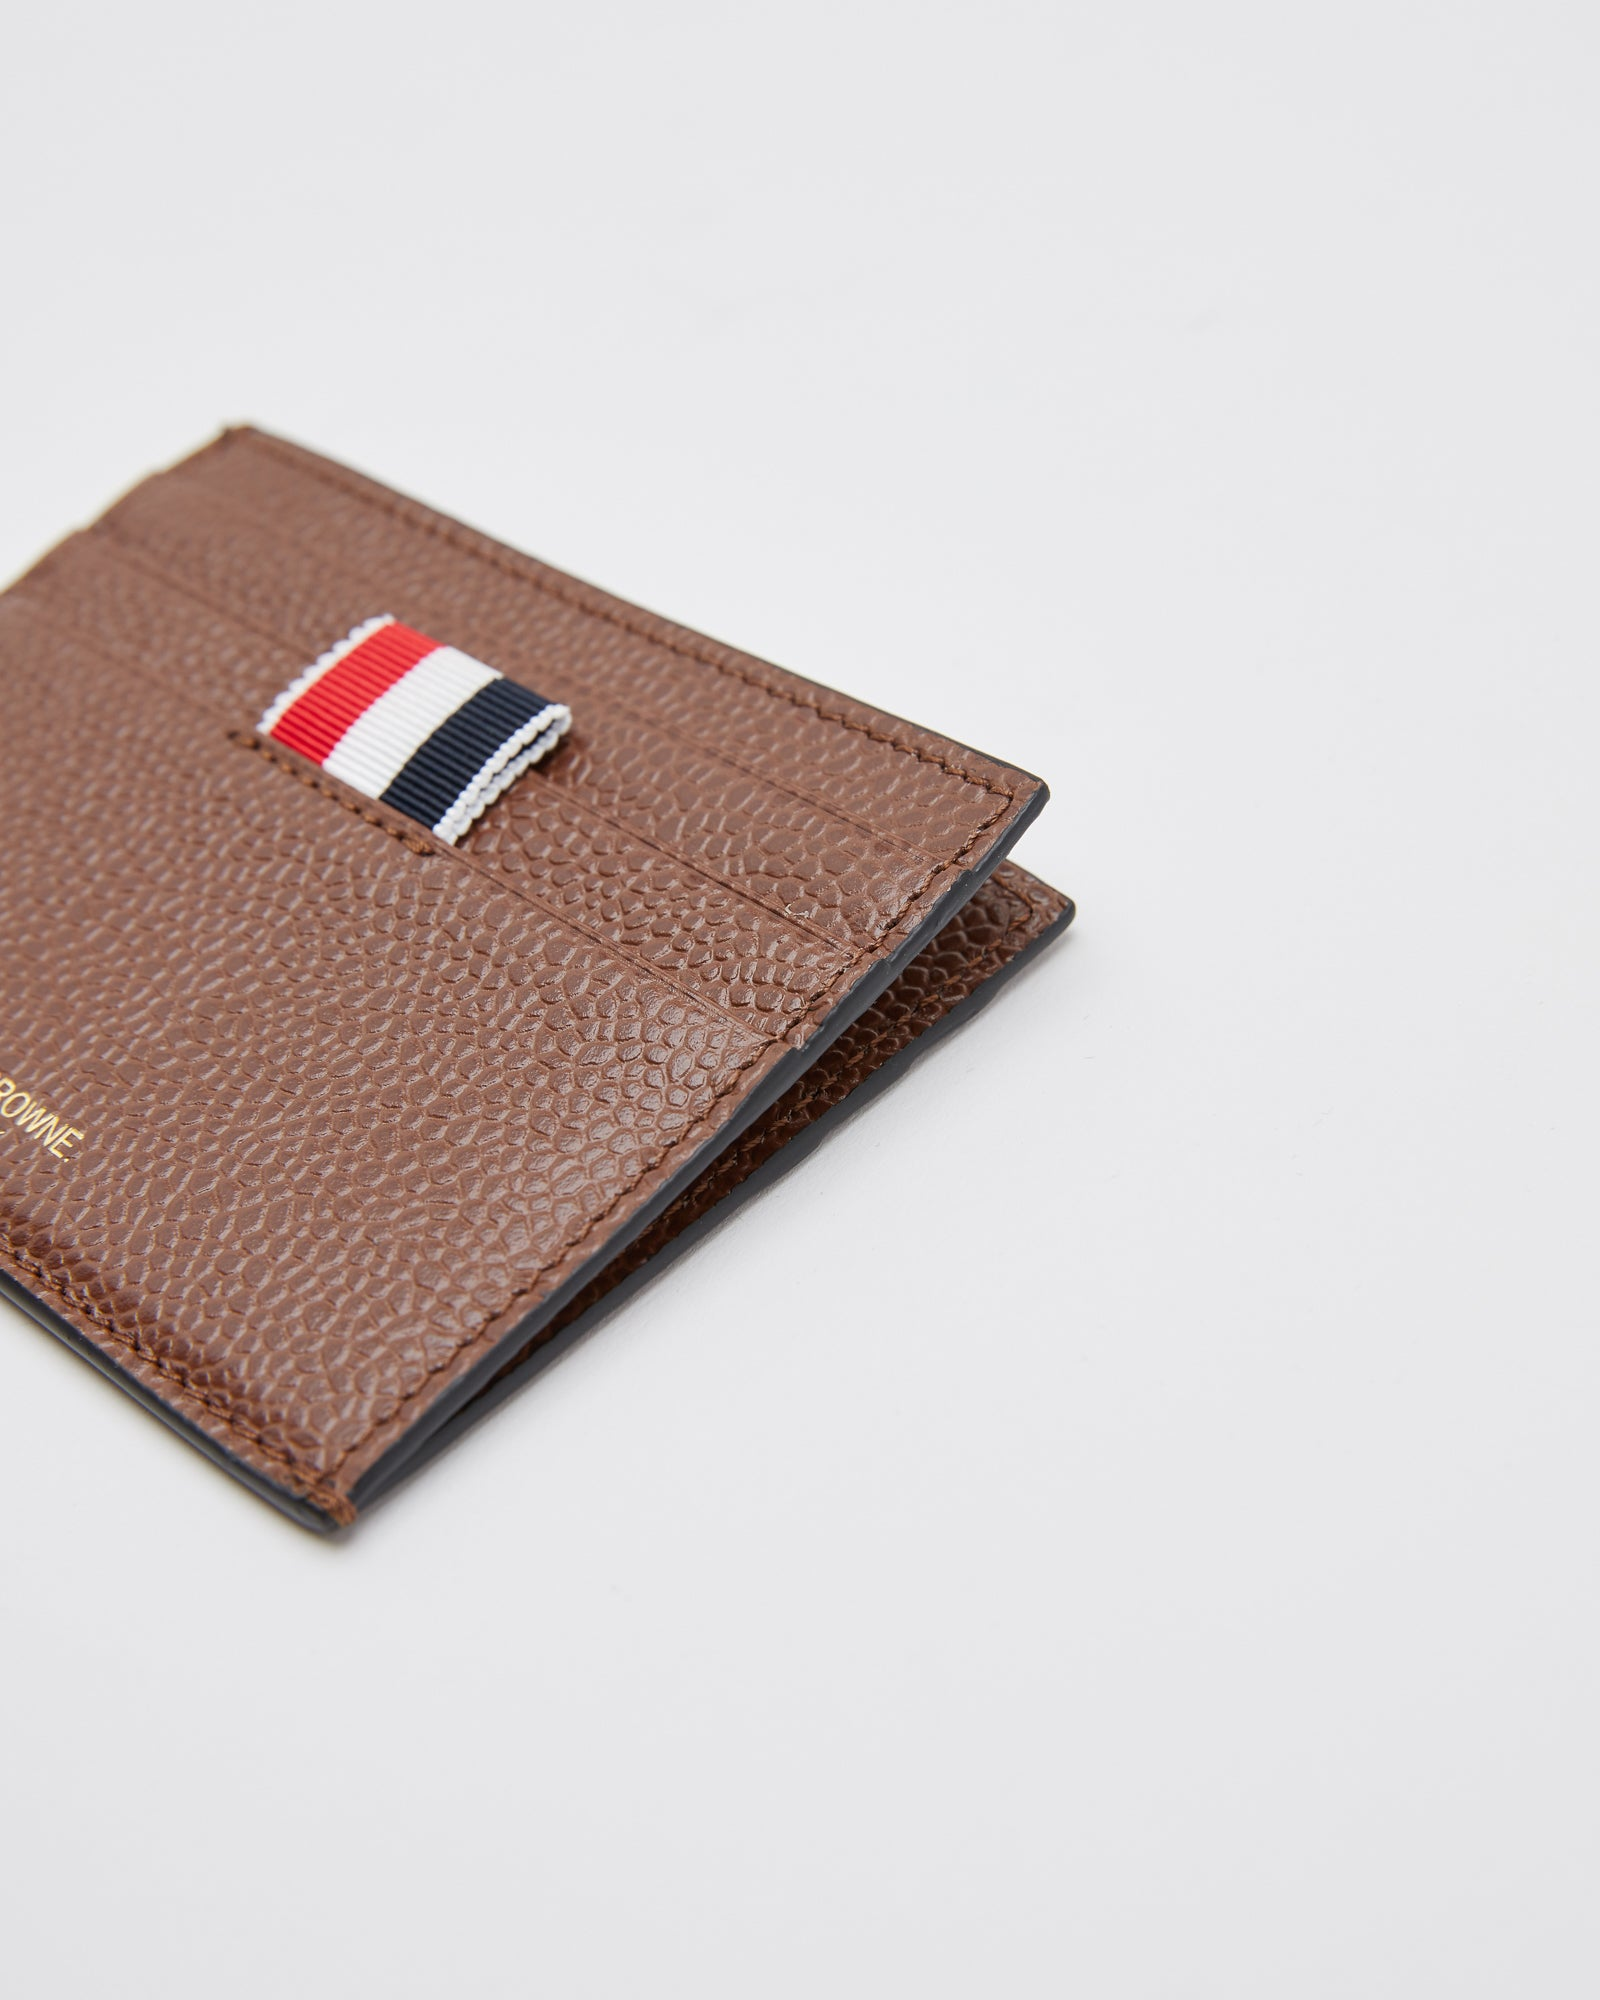 Two Sided Card Holder in Pebble Grain Brown